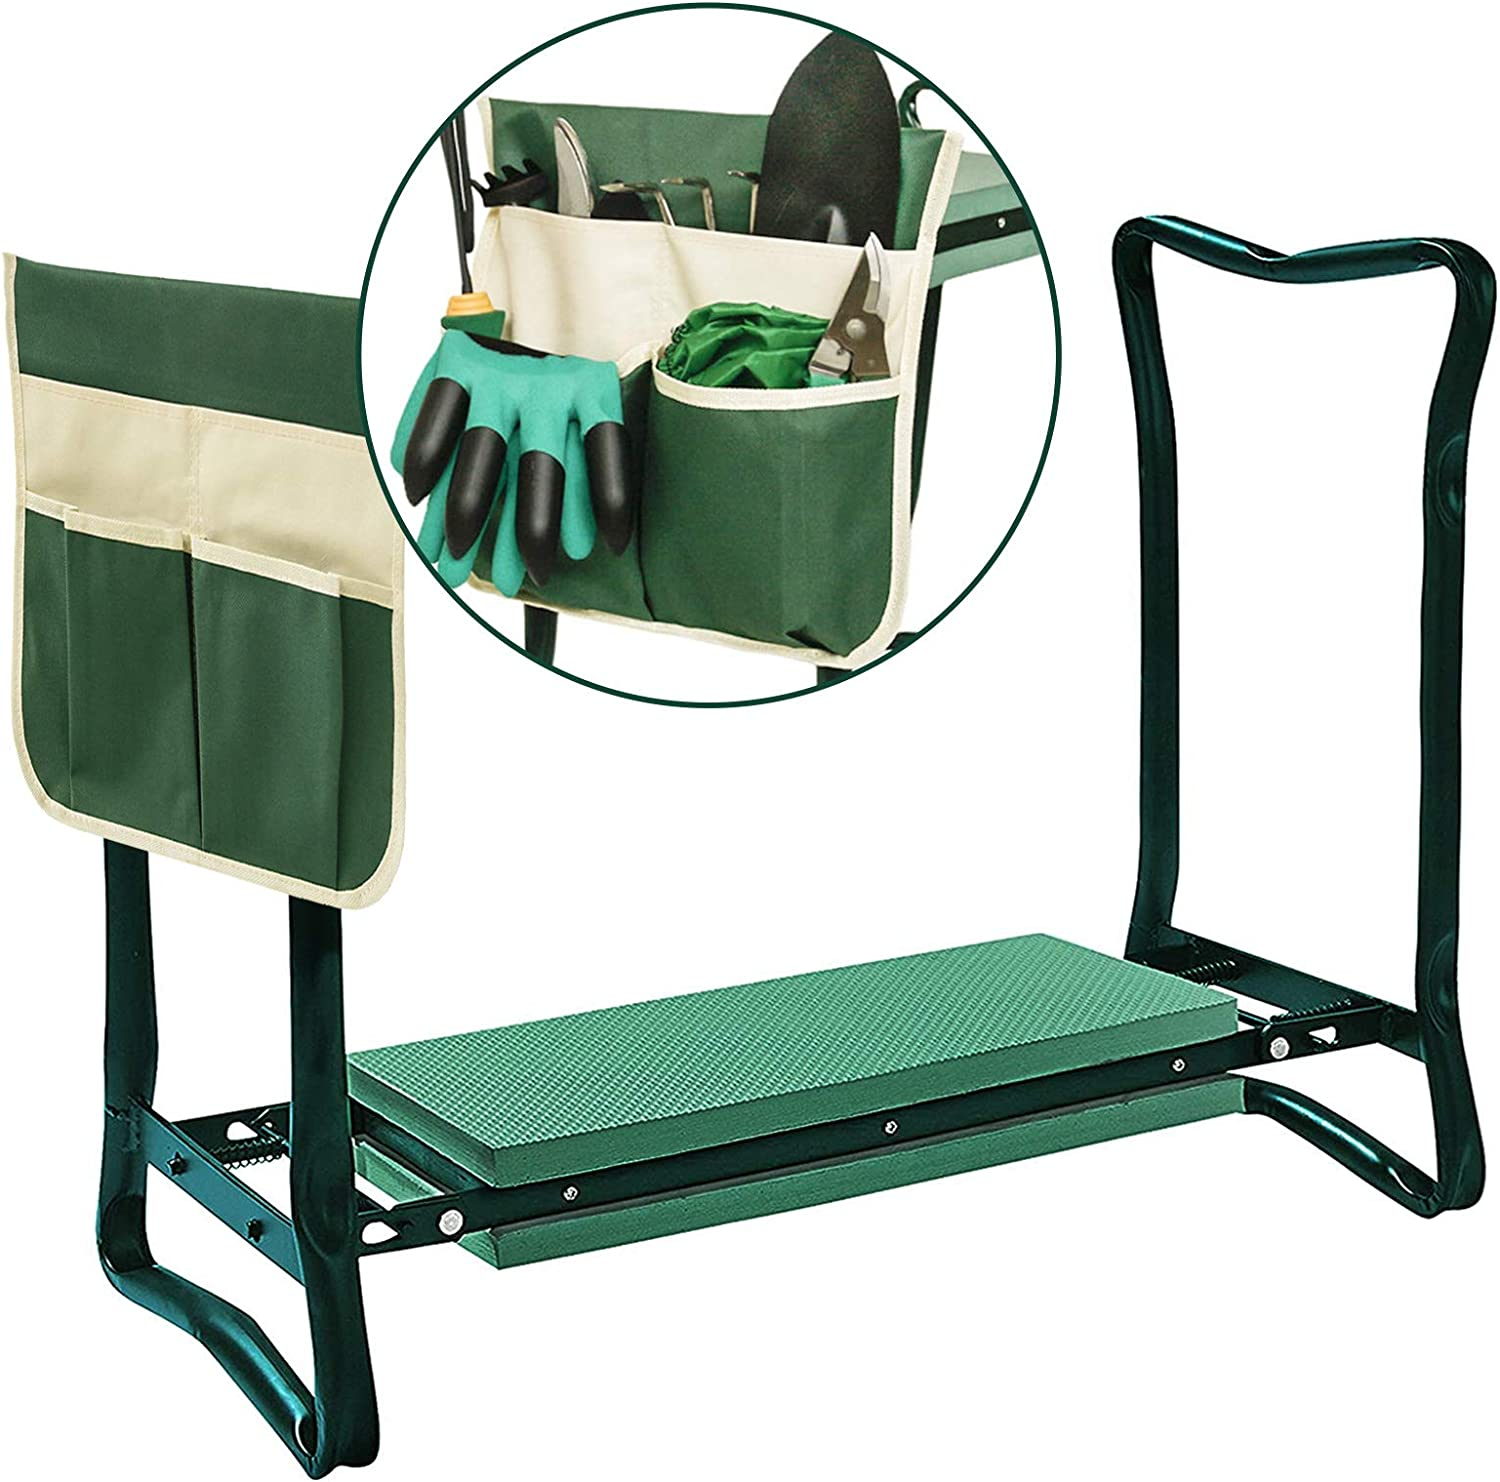 SICHOWEL Garden Kneeler and Seat with 1 Large Removable Tool Pouch, Portable and Foldable Garden Stool with Foam for Gardeners